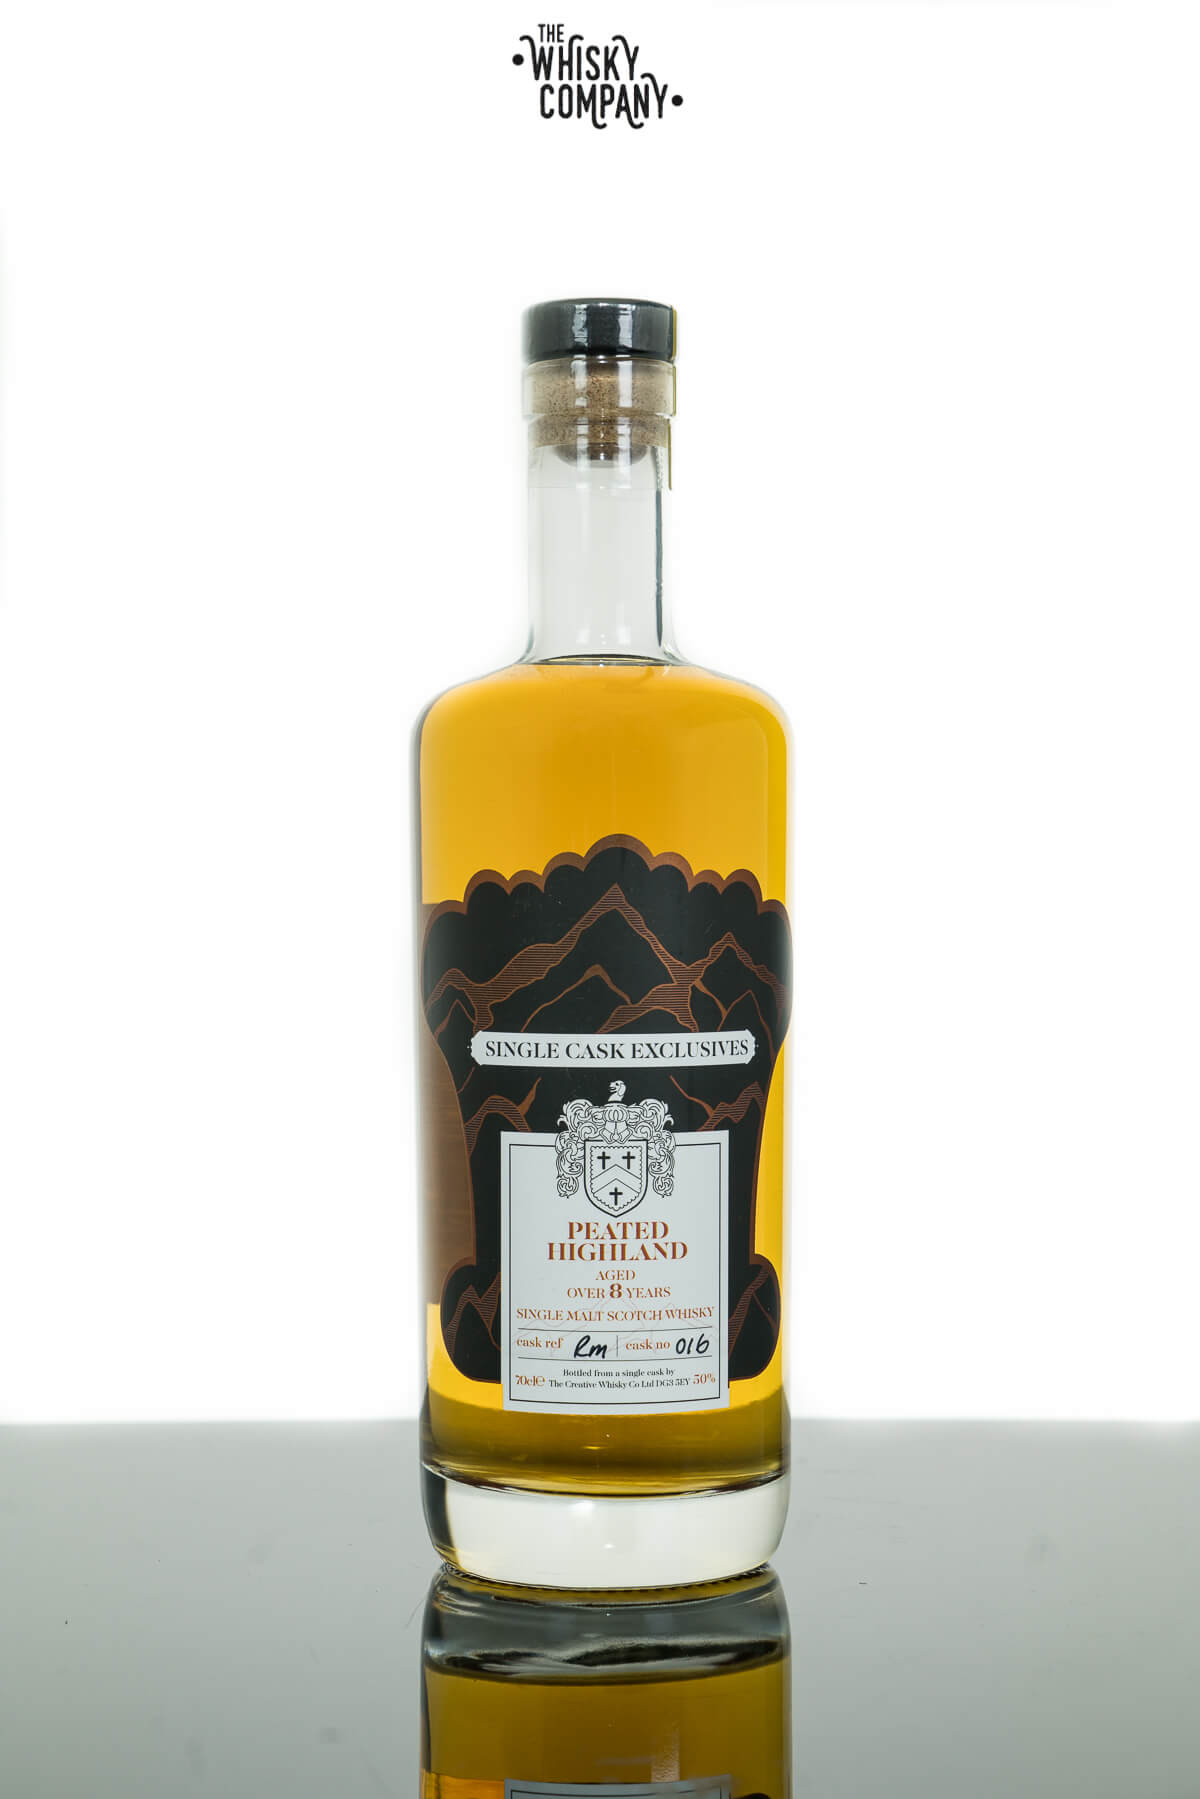 Creative Whisky Co. Peated Highland Aged 8 Years Cask No. 016 Single Malt Scotch Whisky (700ml)